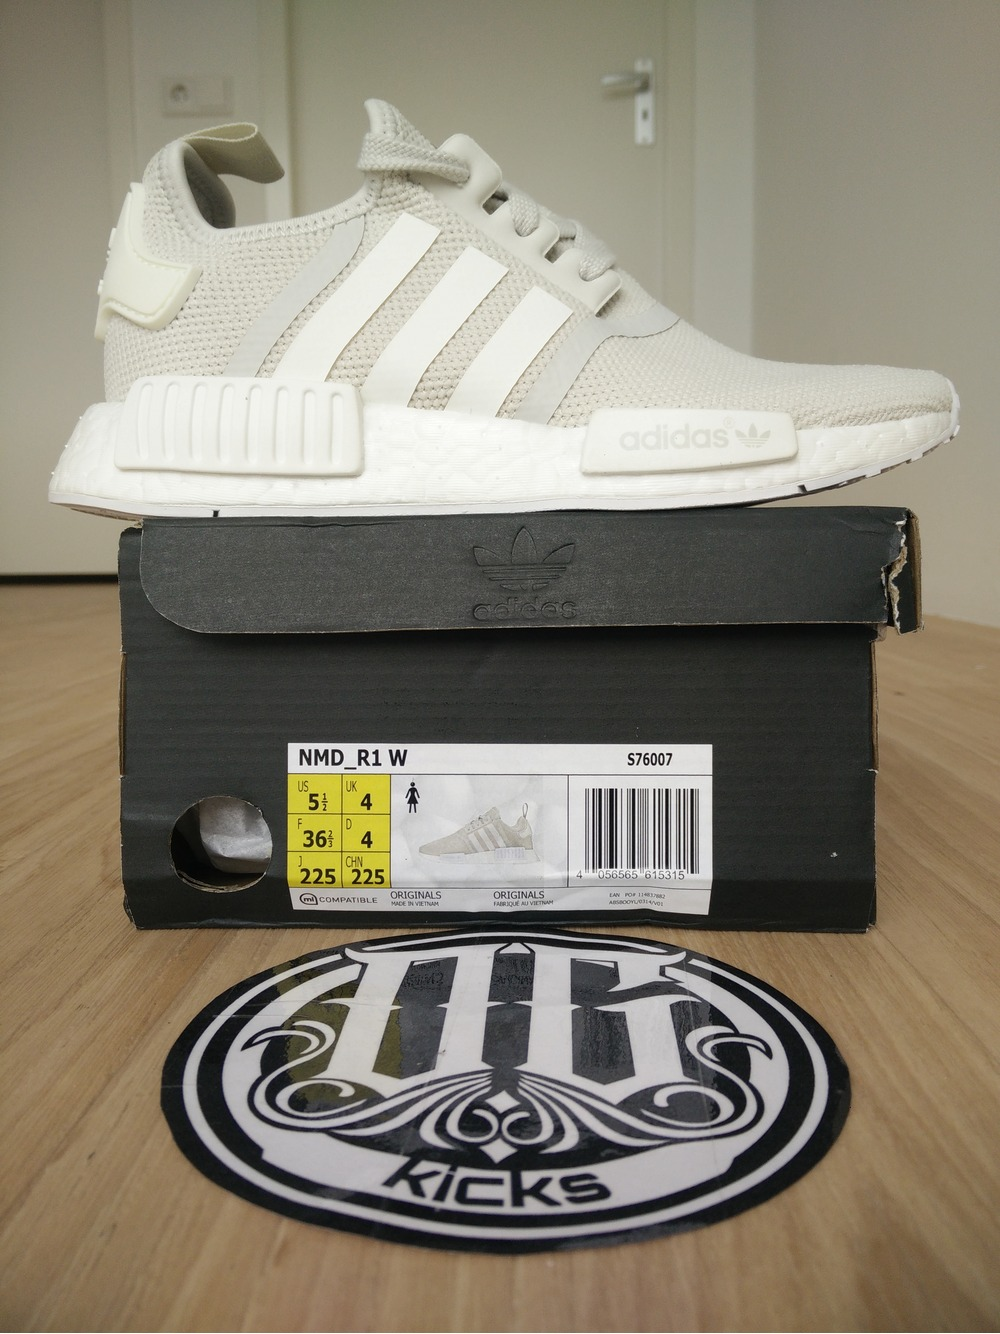 Another BAPE x adidas NMD R1 Online Release